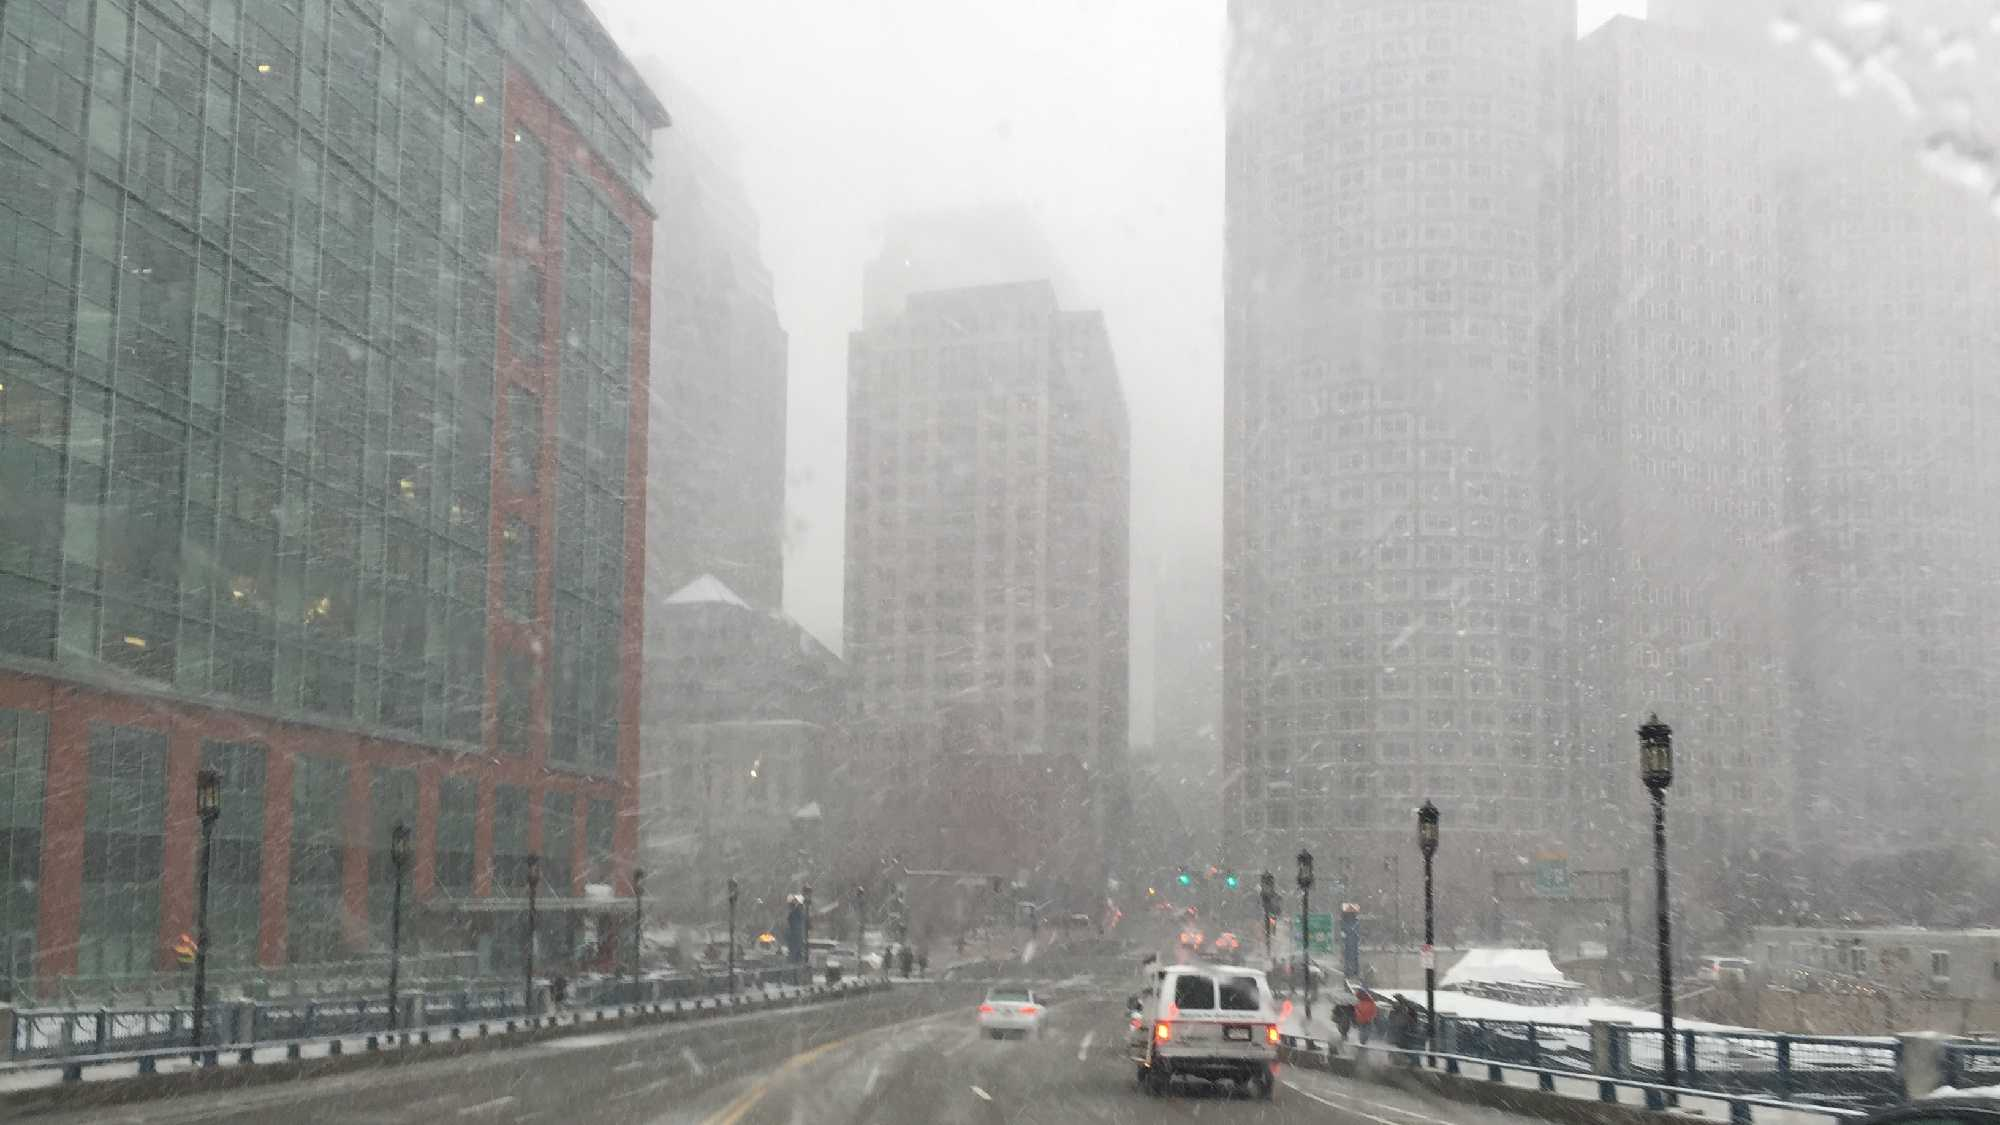 Snow falls in Boston.